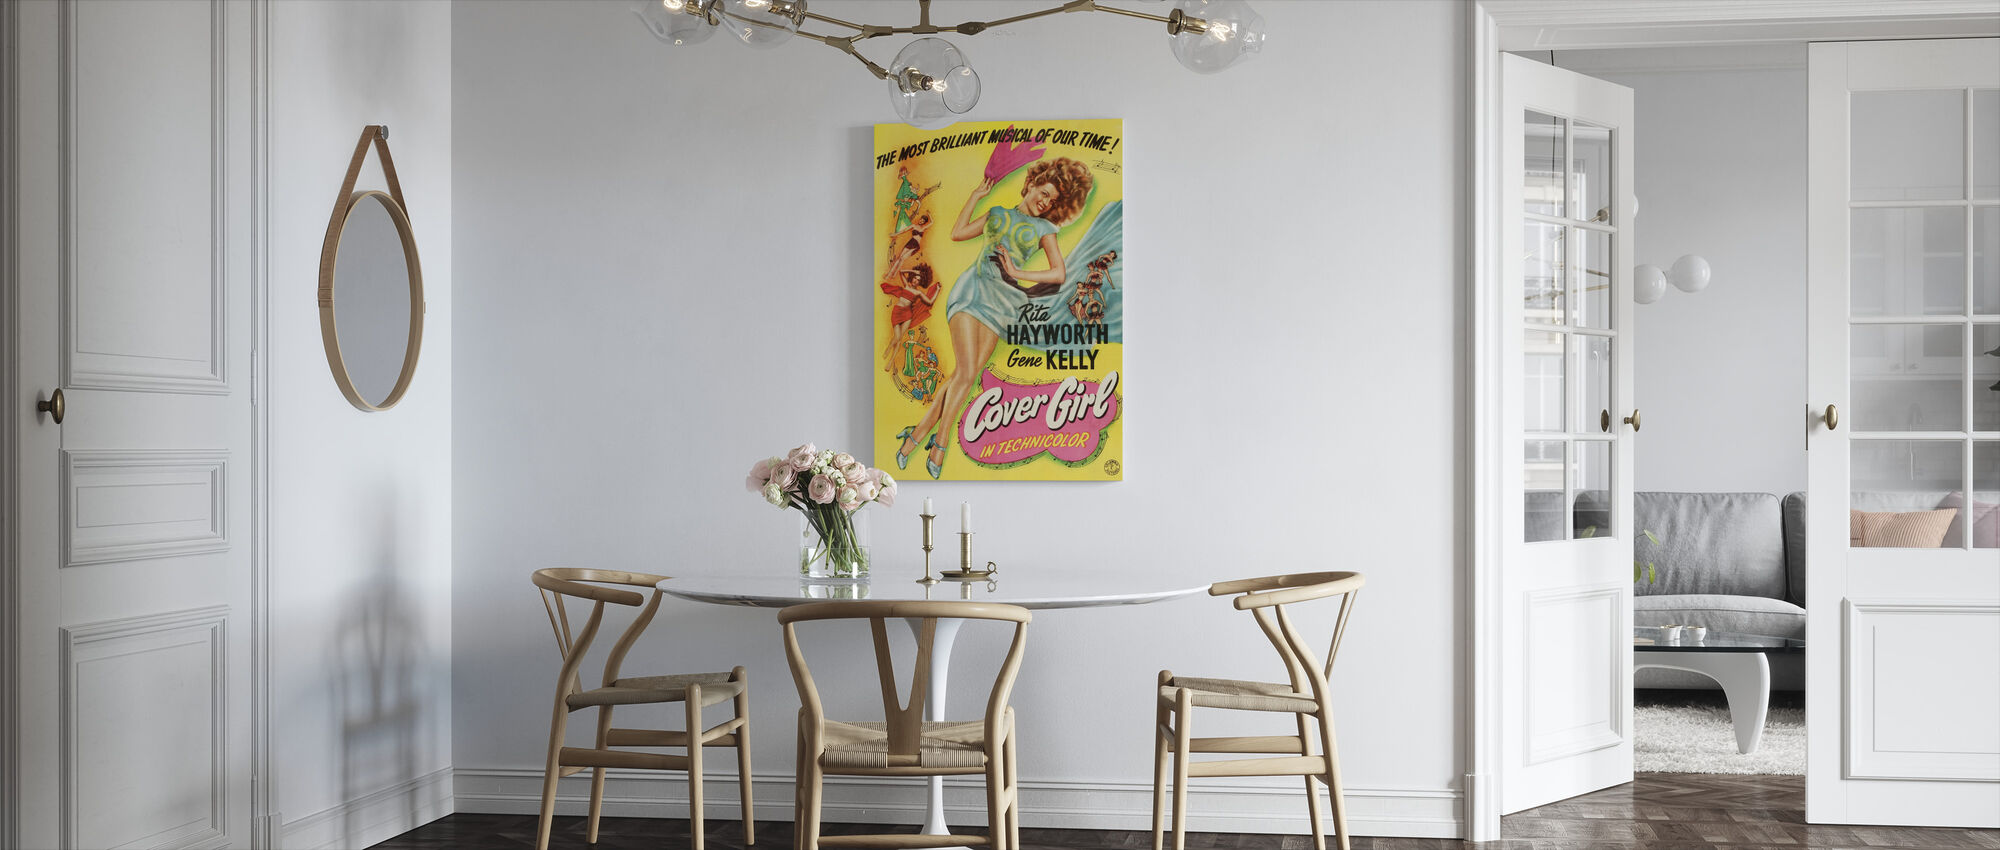 Cover Girl - Canvas print - Kitchen